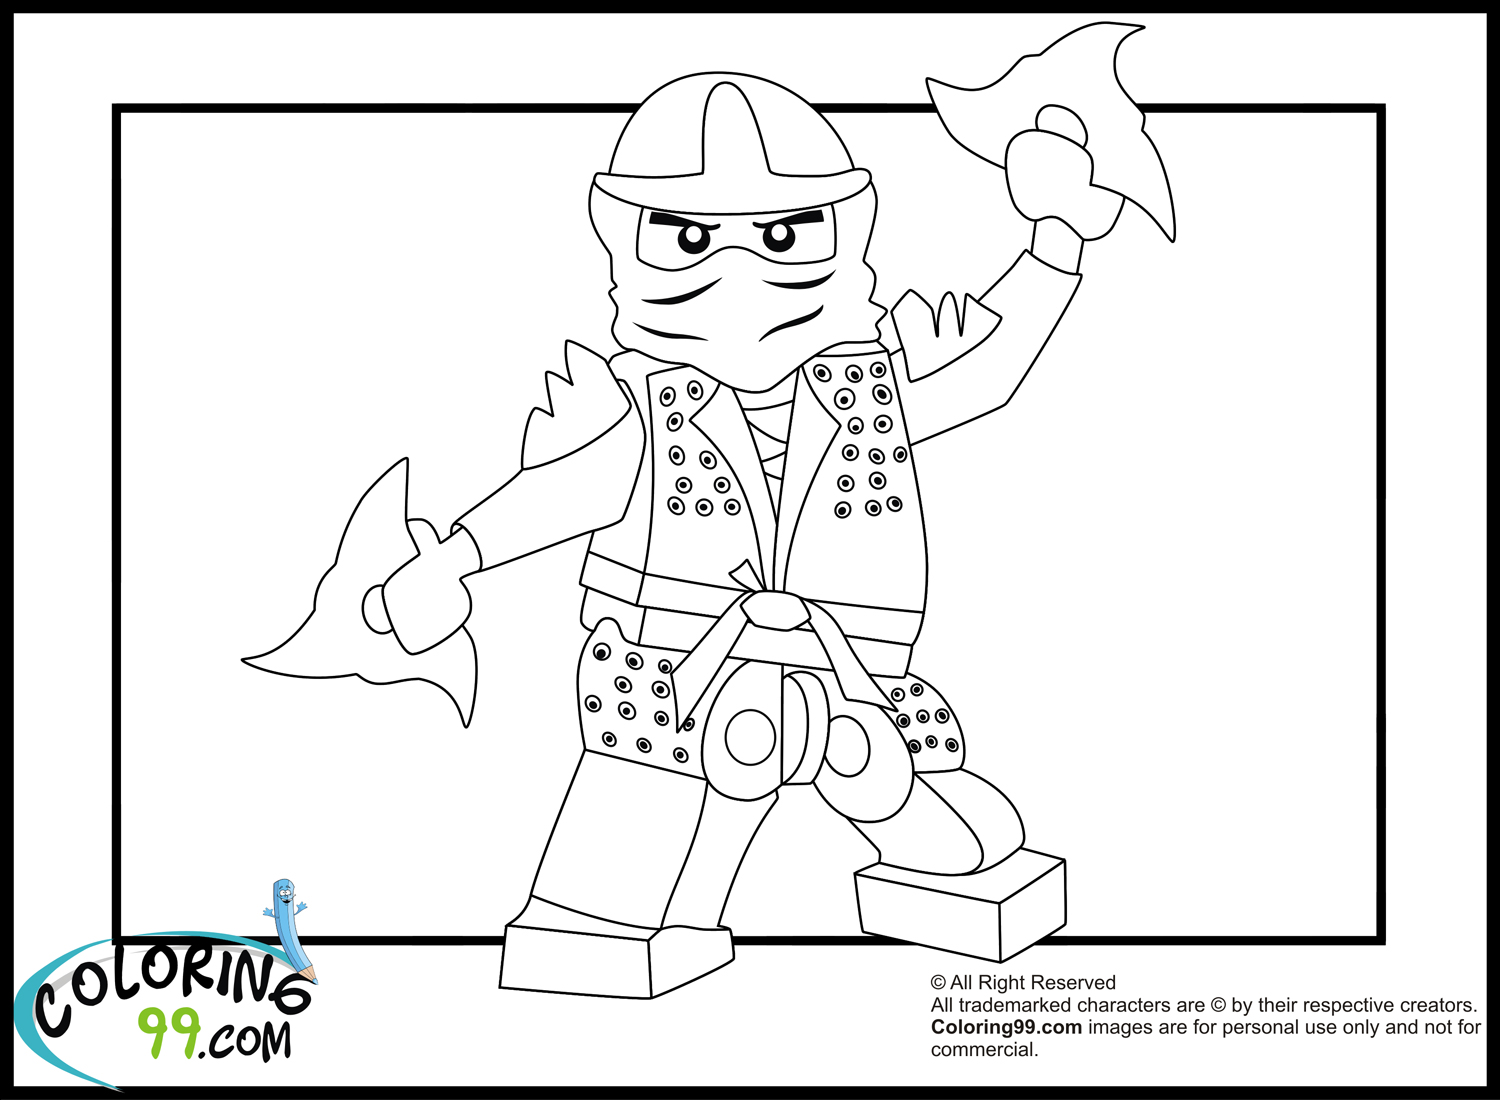 Lego ninjago lloyd the green ninja coloring pages for Ninjago green ninja coloring pages